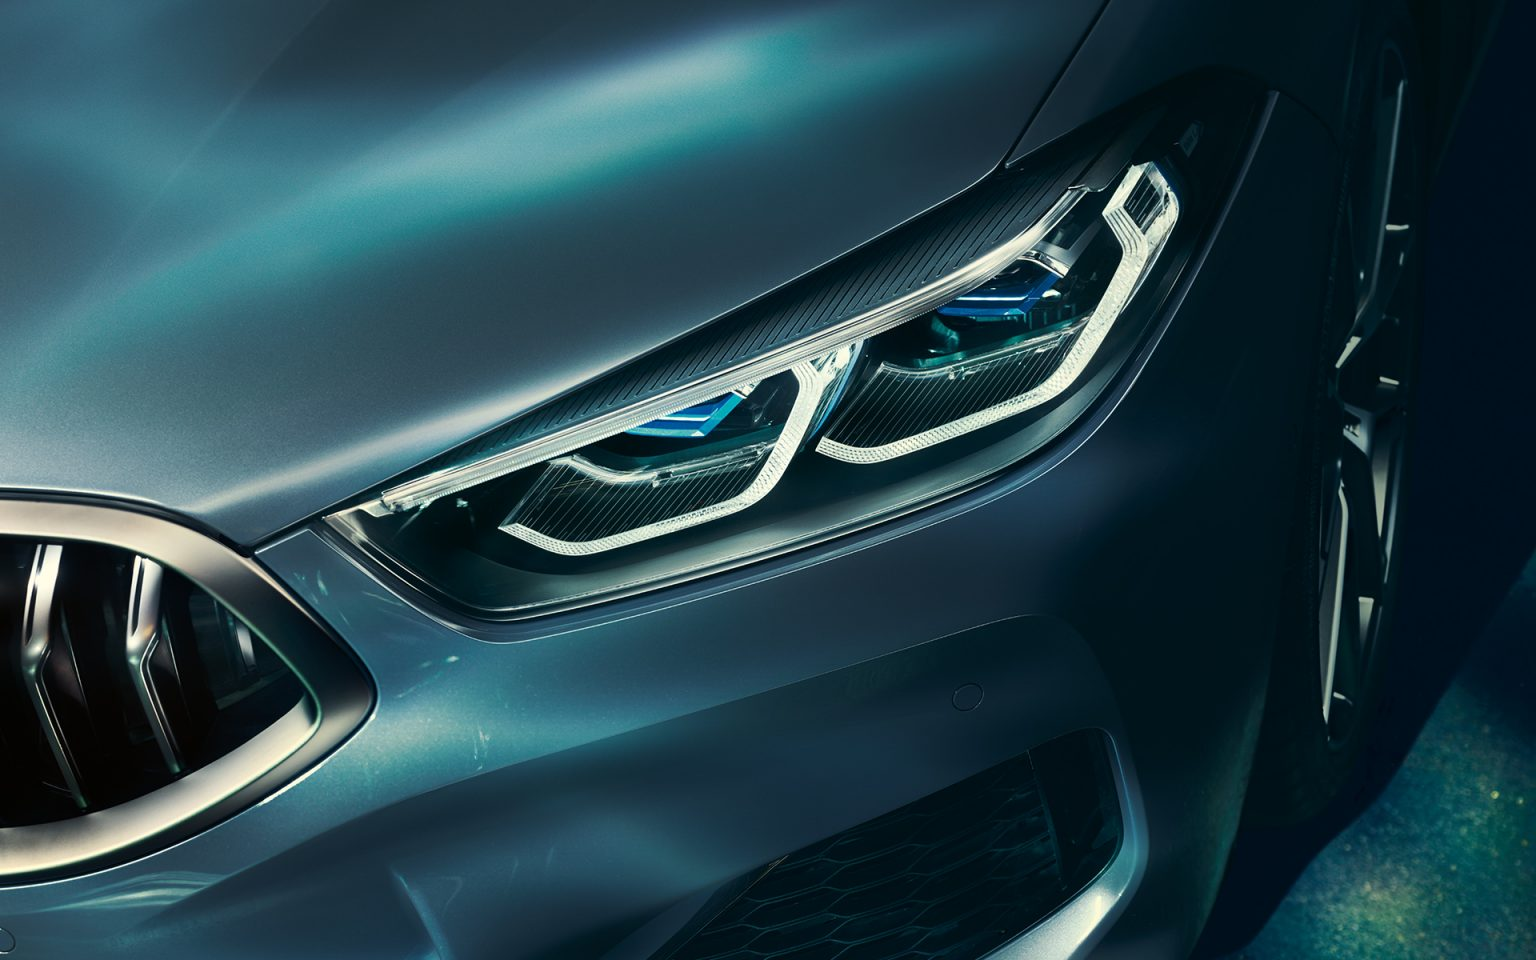 bmw-8series-coupe-gallery-wallpaper-08.jpg.asset.1527577203613